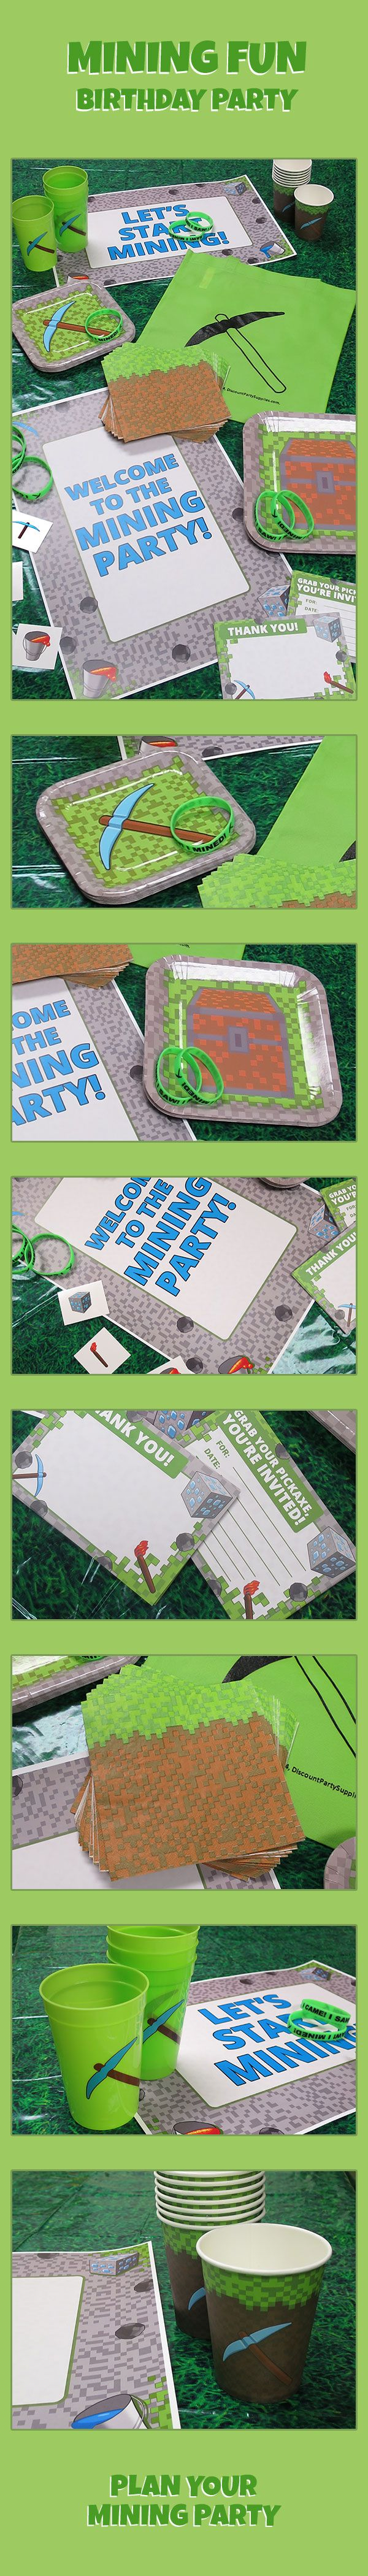 Grab your pickaxe & shovel, it's time to plan your Minecraft birthday party! It's easy with our exclusive Mining Fun party supplies. We have everything from tableware & decorations (including new TNT balloons) to invitations & favors. We also have a boat load of Minecraft party supplies! Start planning today: http://www.discountpartysupplies.com/boy-party-supplies/minecraft-party-supplies?utm_source=Pinterest&utm_medium=social&utm_content=PinterestSkyscraper&utm_campaign=MiningFunPromotedPin